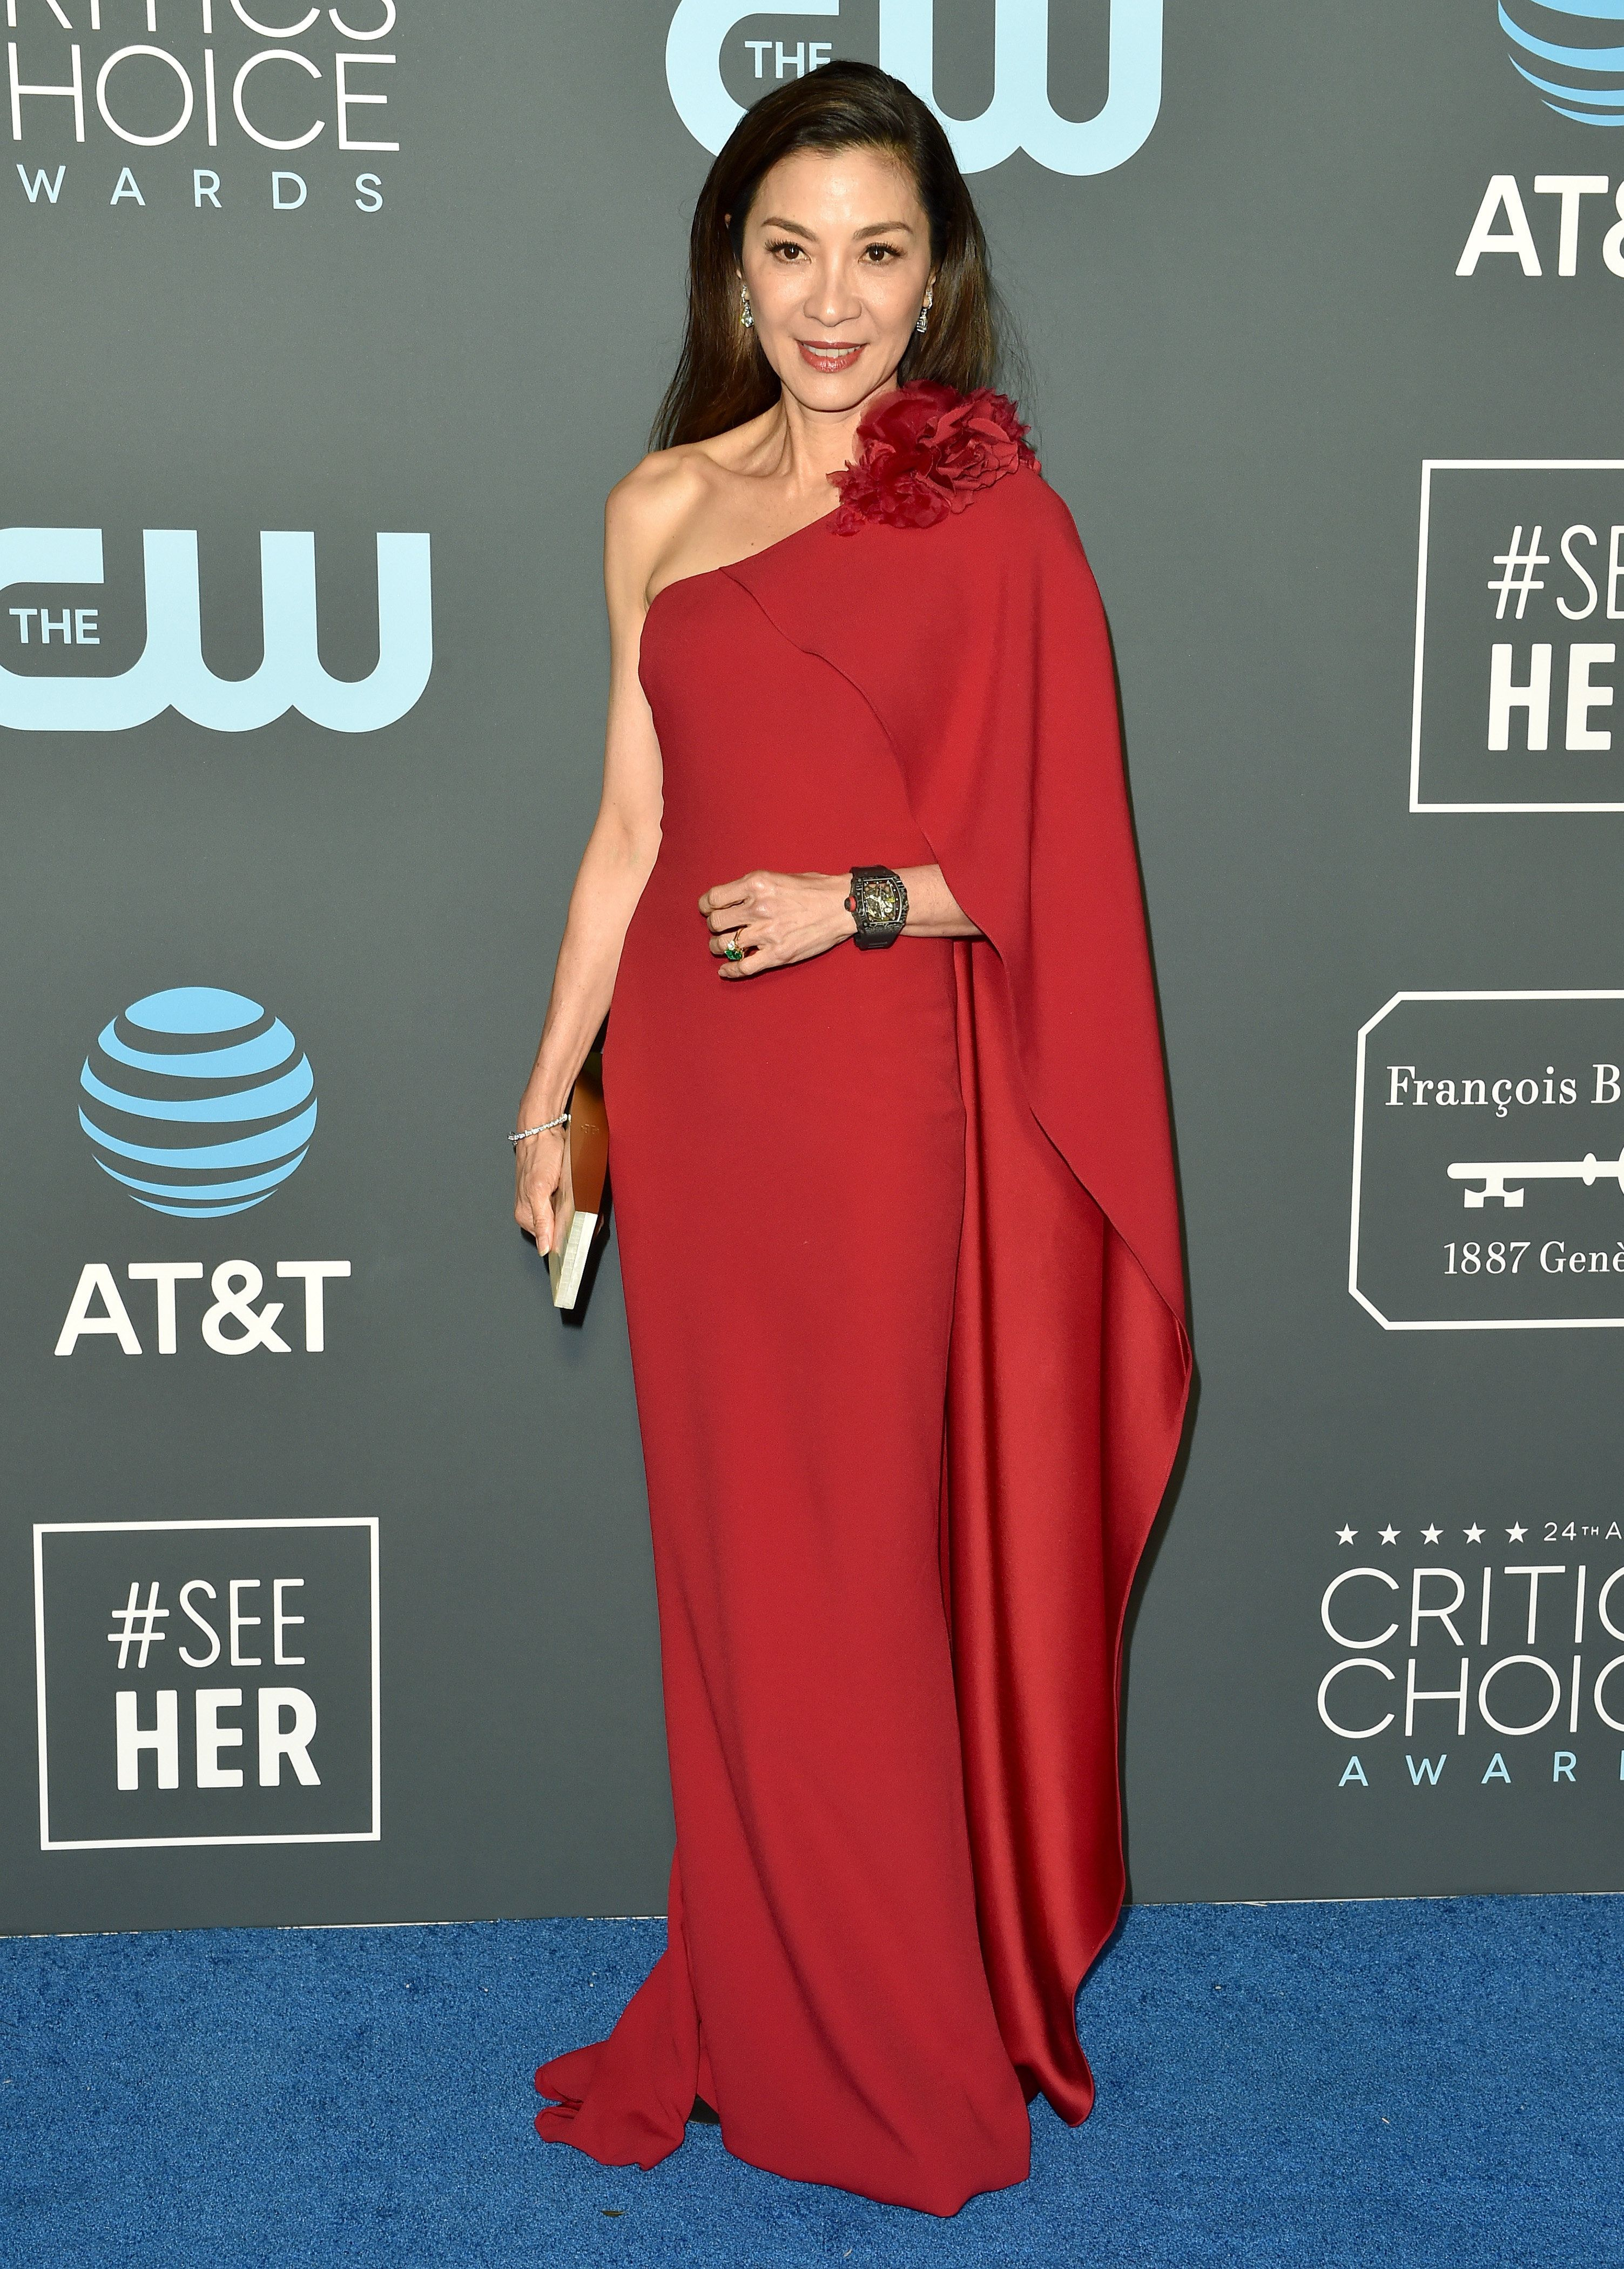 SANTA MONICA, CA - JANUARY 13:  Michelle Yeoh attends the 24th annual Critics' Choice Awards at Barker Hangar on January 13, 2019 in Santa Monica, California.  (Photo by Axelle/Bauer-Griffin/FilmMagic)